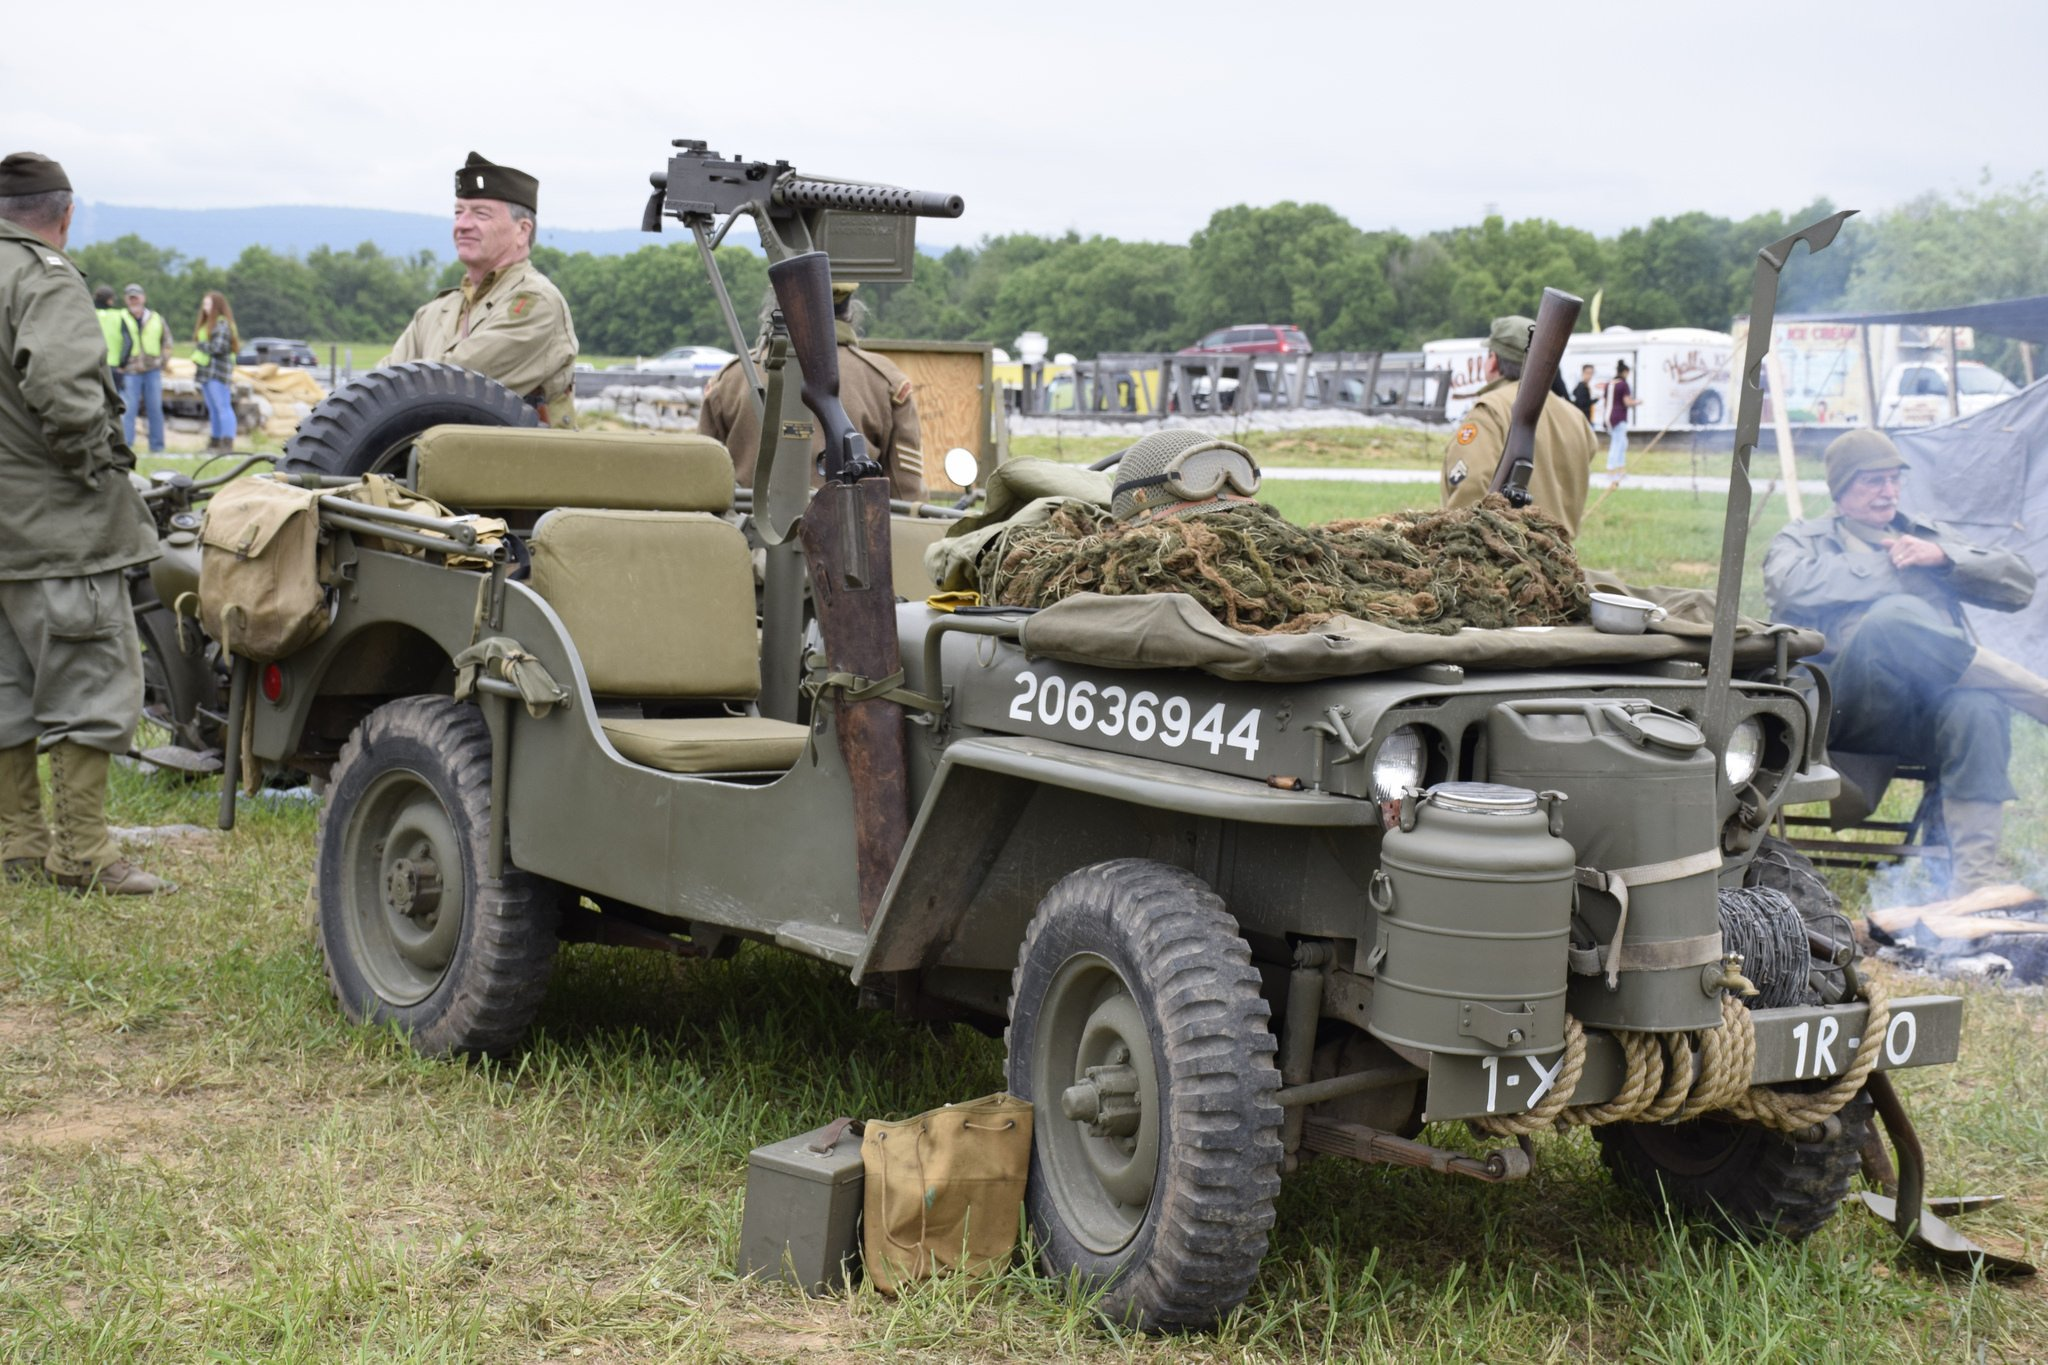 A world War II jeep on display during USAHEC's annual Military Heritage Days.